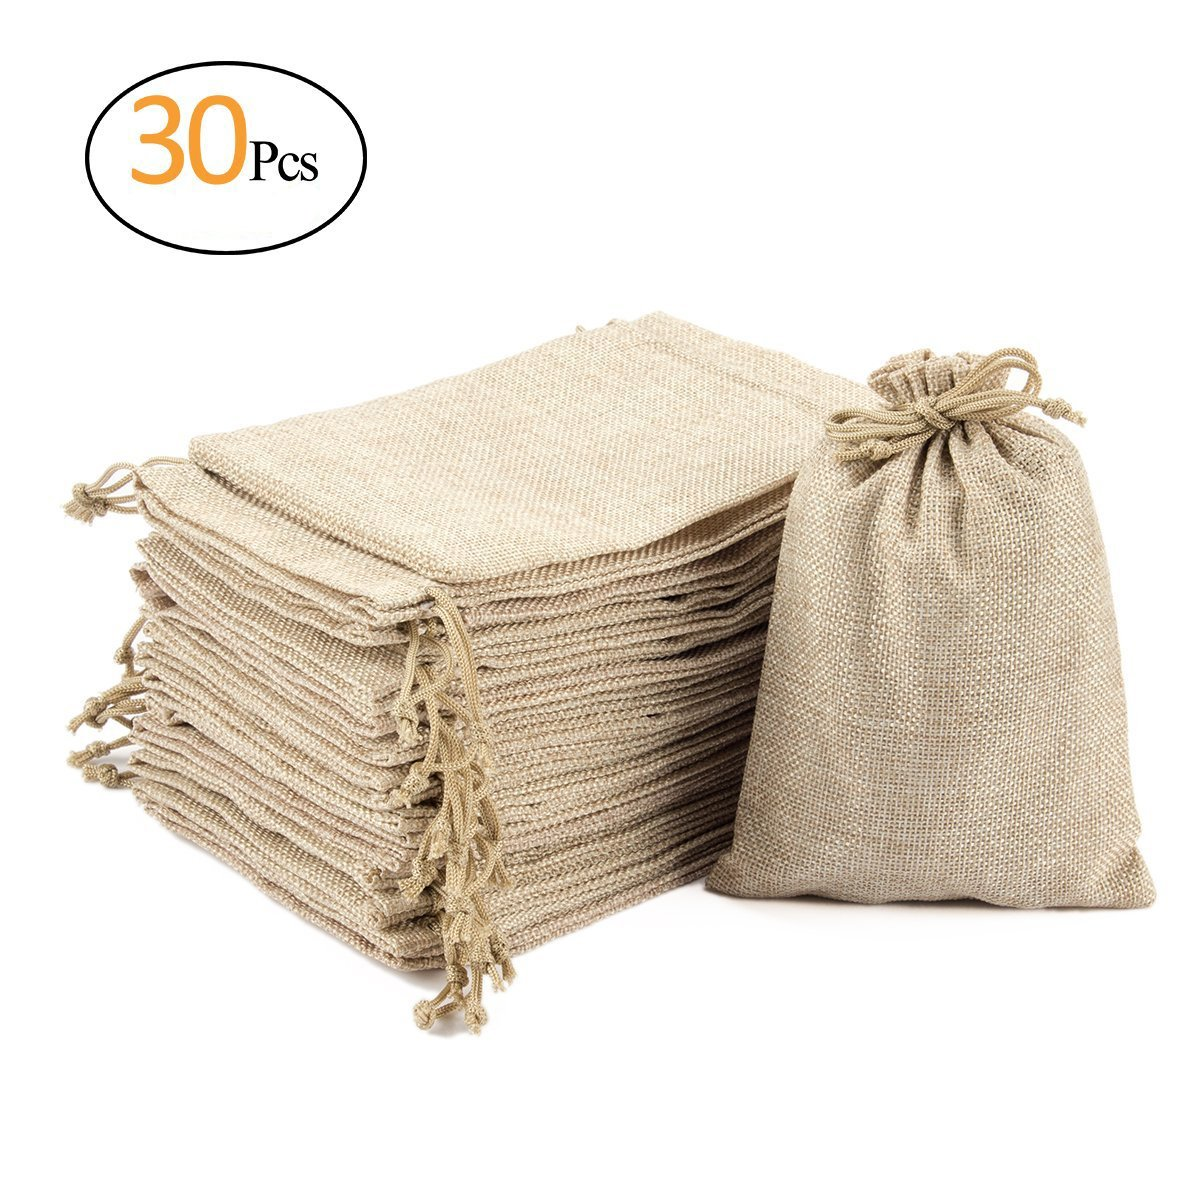 ANPHSIN 30 Packs Burlap Bag with Drawstring - 7.1'' x 4.9'' Gift Bag Jewelry Pouches Sacks for Wedding Favors, Party, DIY Craft and Christmas